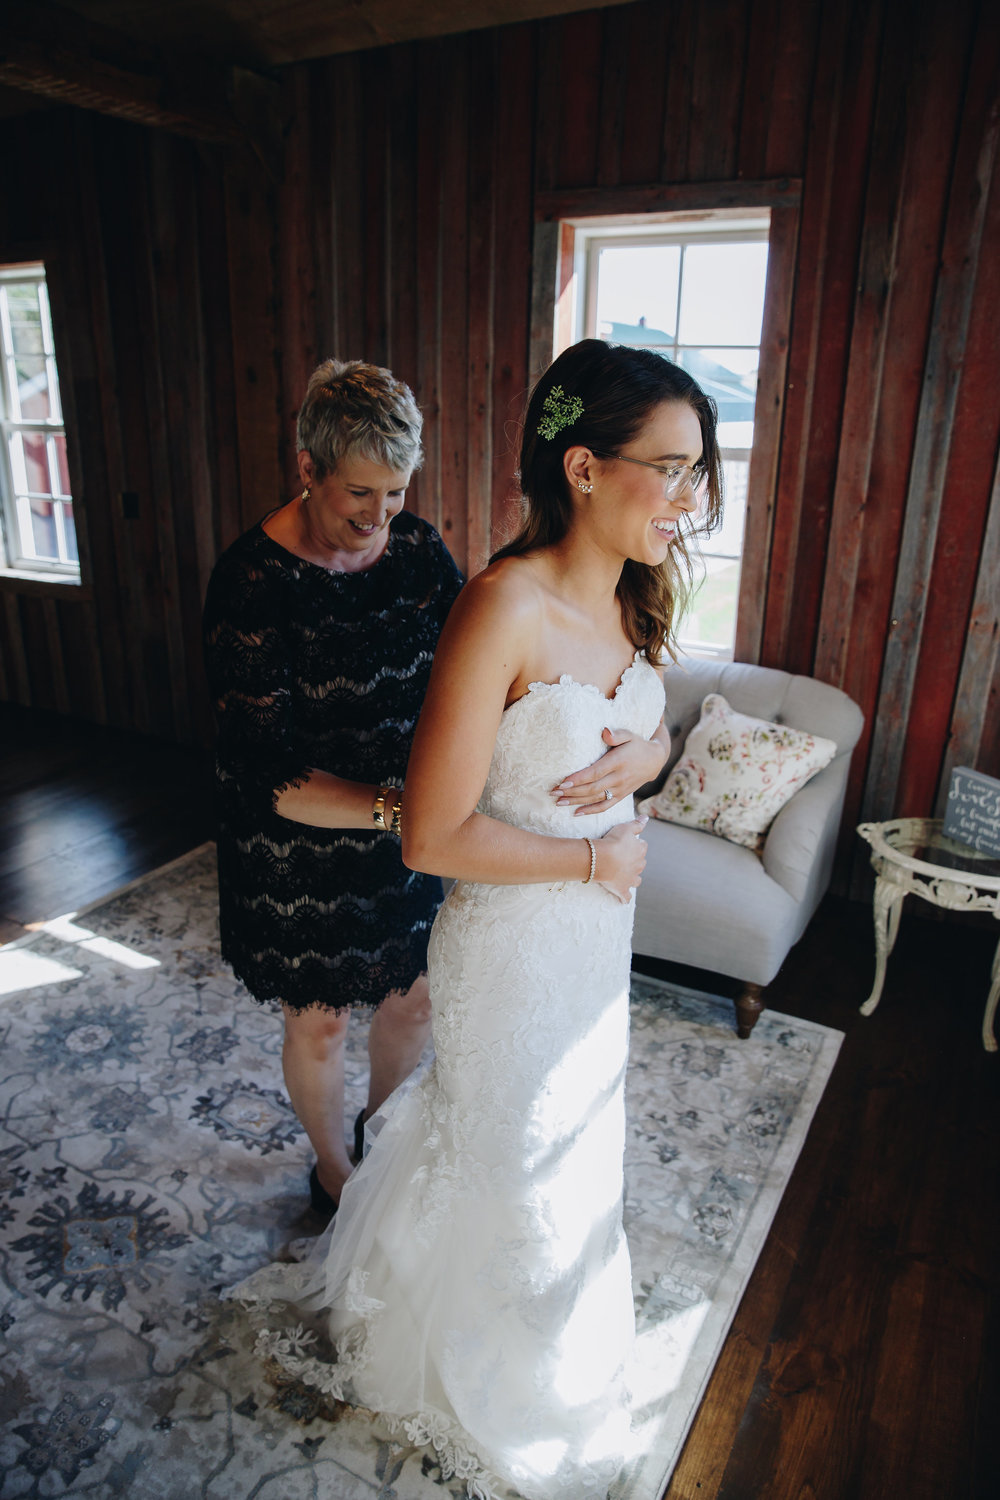 Minneapolis bride puts her wedding dress on before her first look